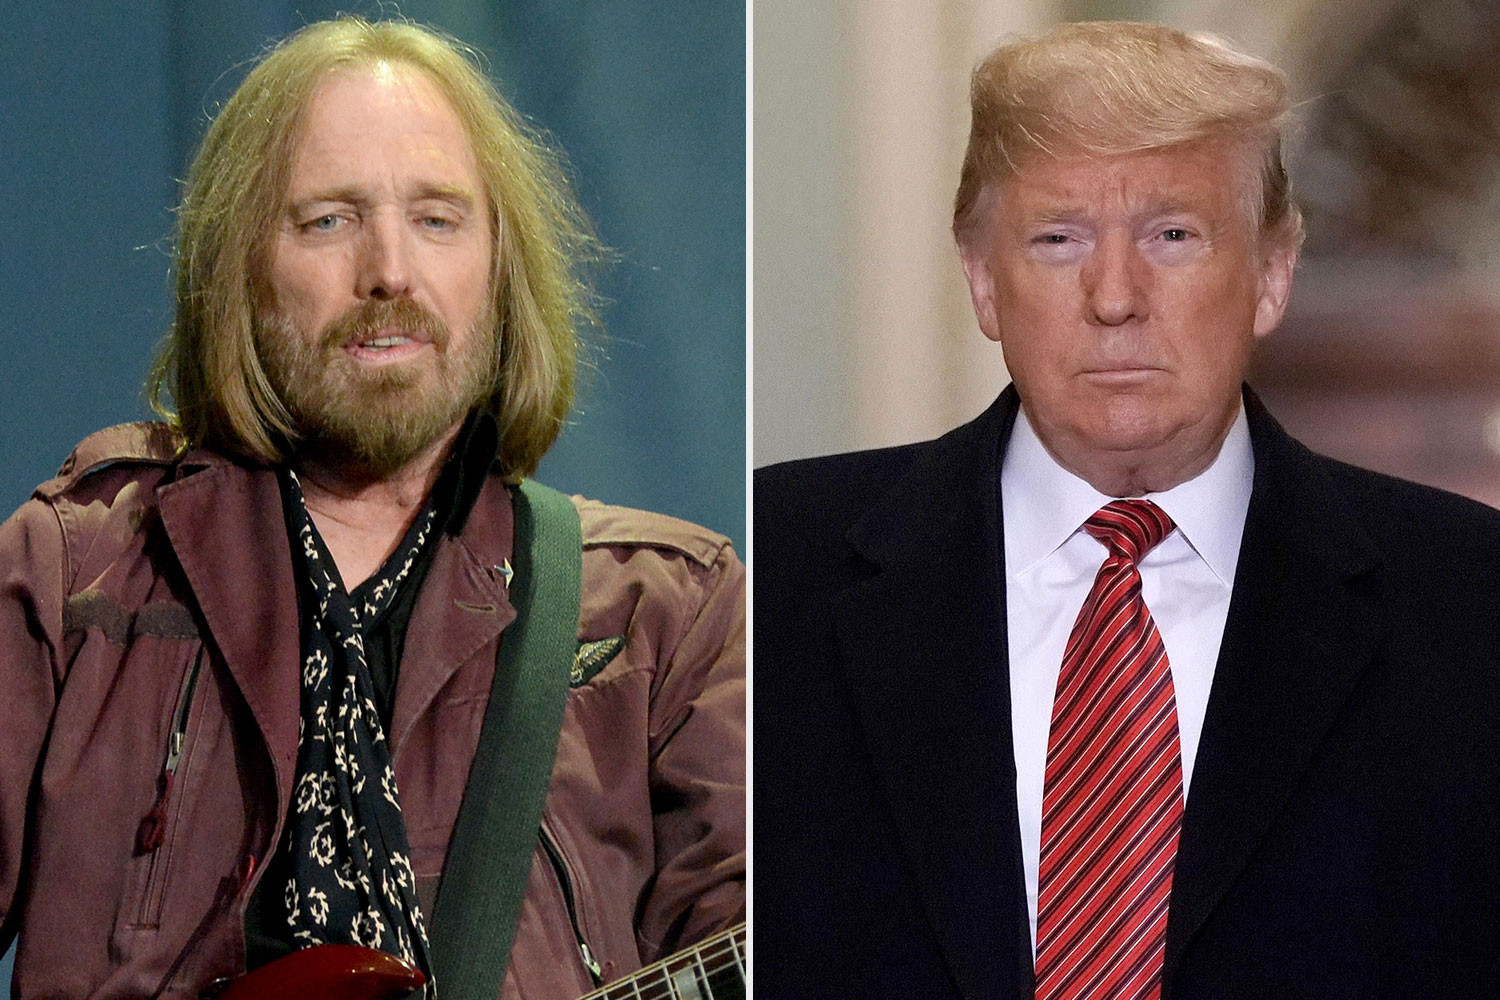 His song is not for a campaign of hate - Tom Petty's family says as it issues cease and desist order to Trump campaign lindaikejisblog